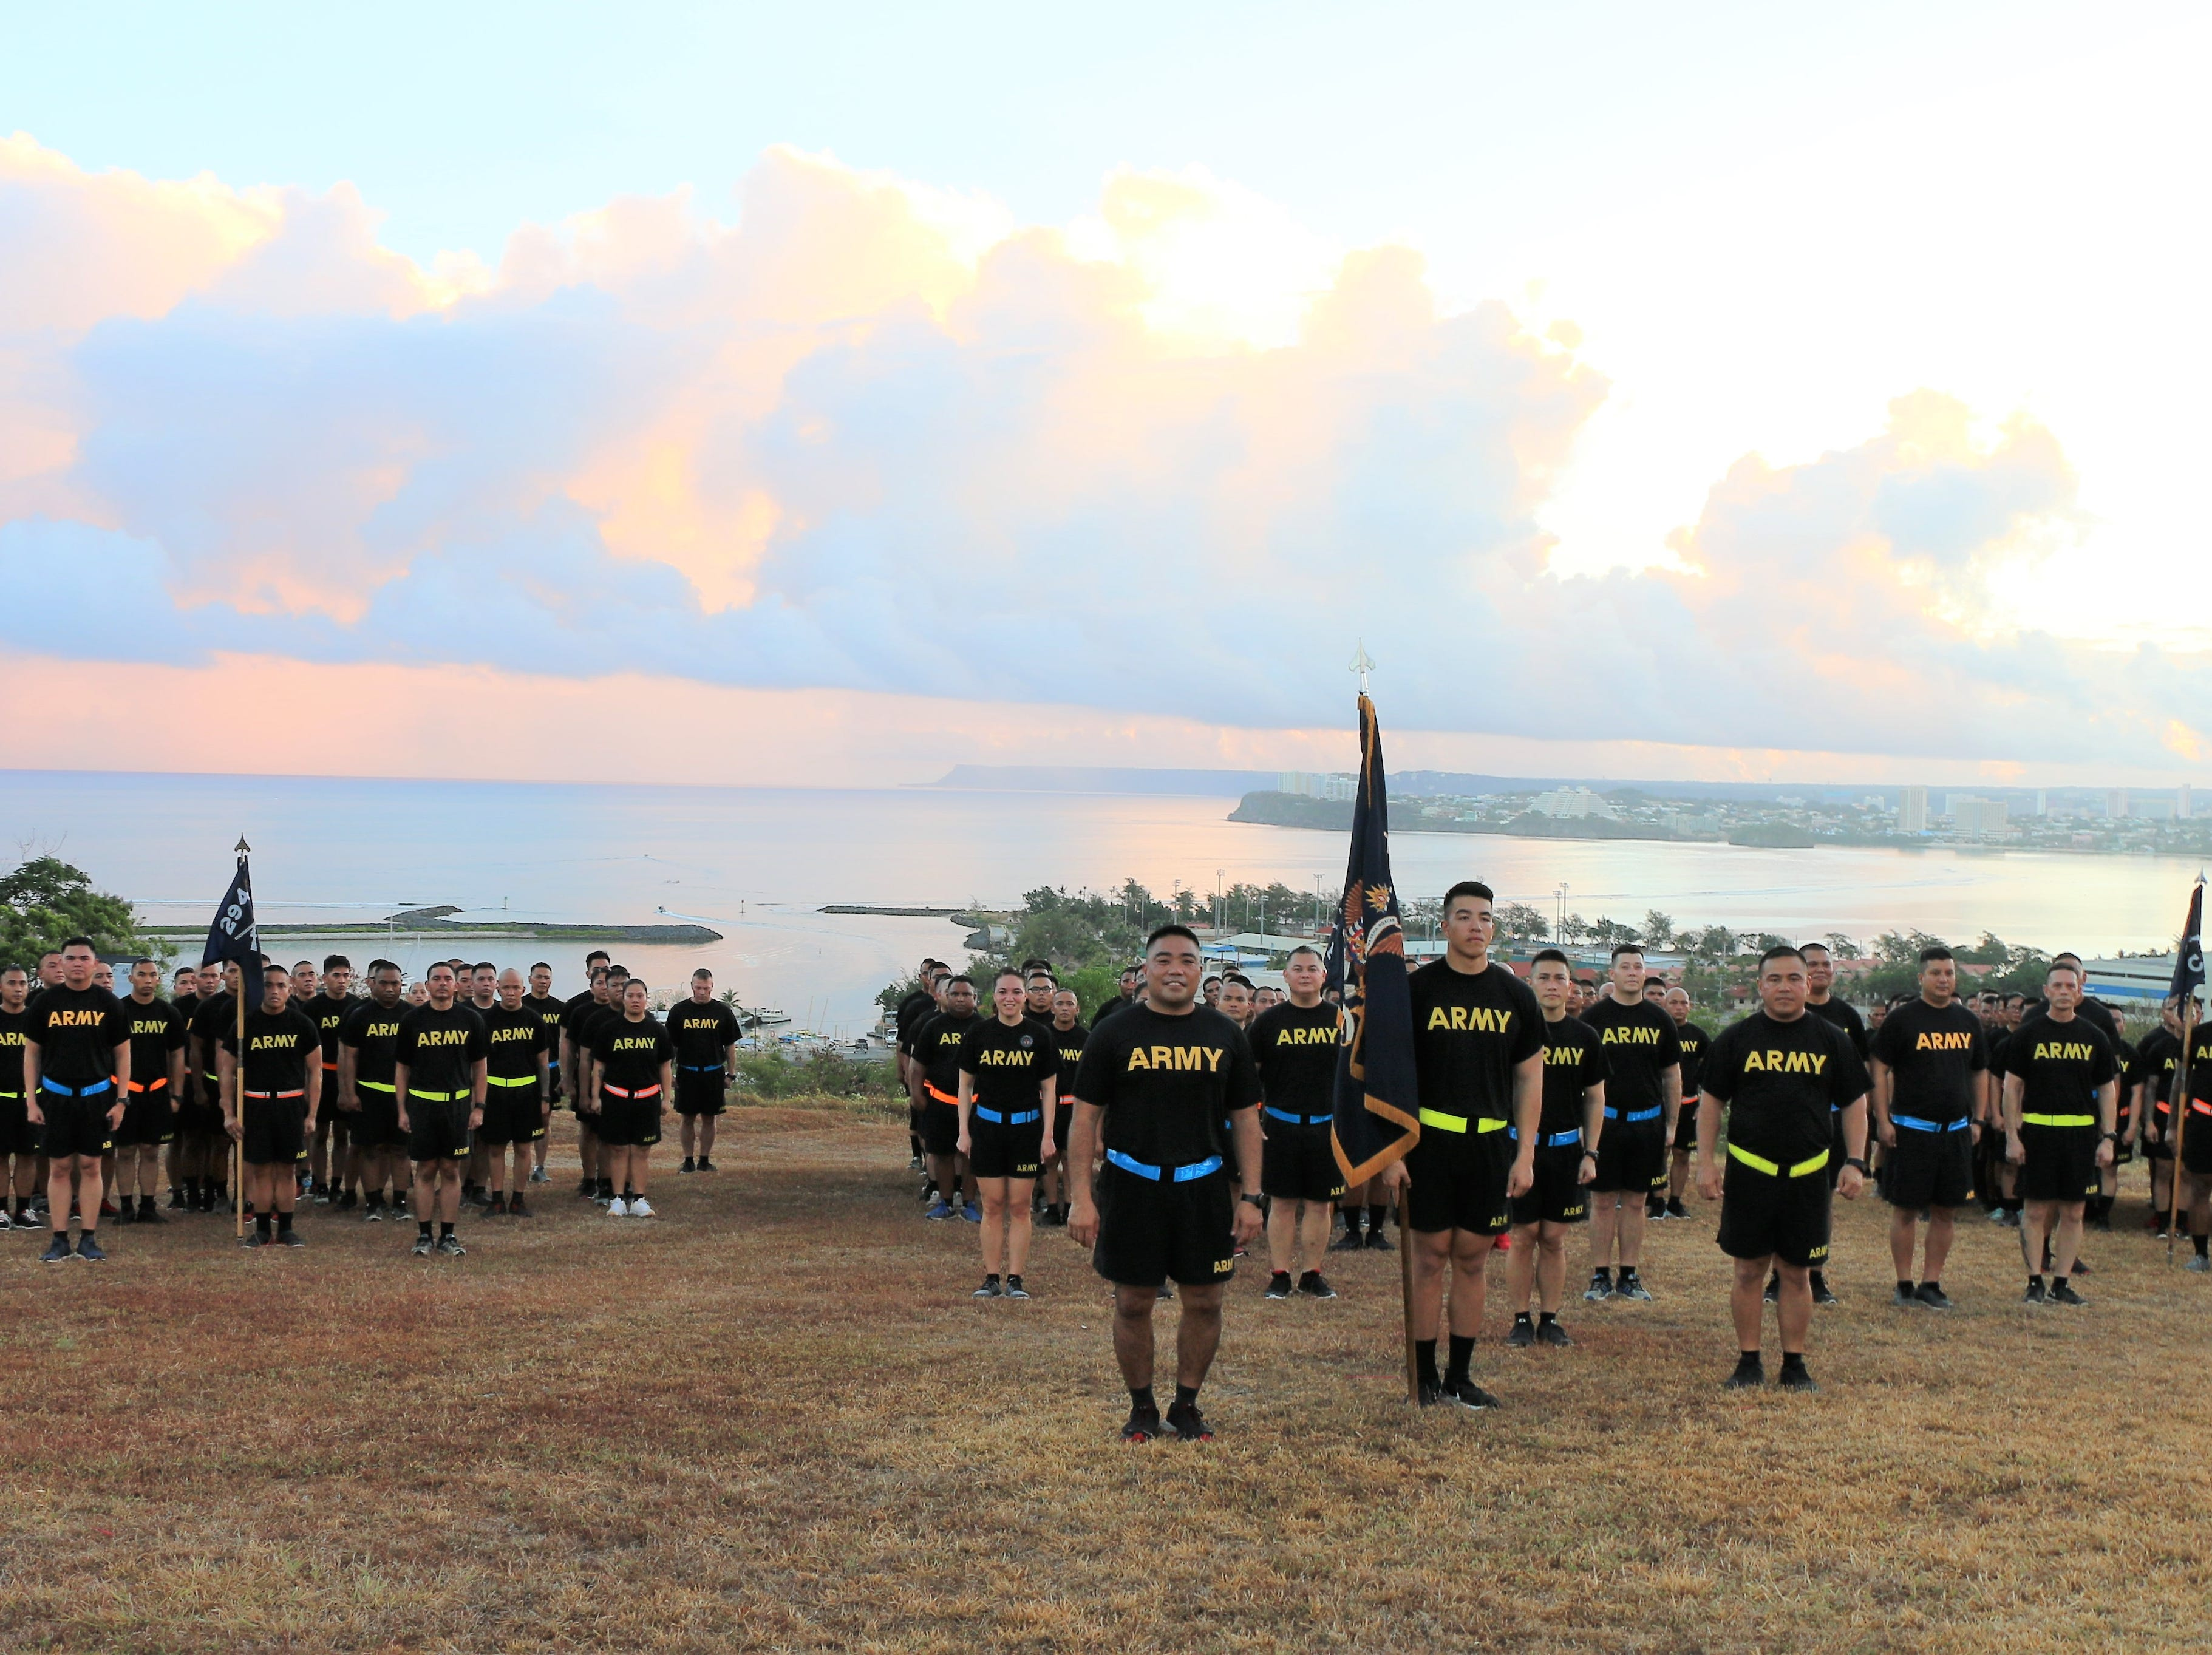 Soldiers, from the Guam Army National Guard's 1st-294th Infantry Regiment, pose for a photo at Fort Apugan, Agana Heights, on Saturday, May 11, following a command run through the village of Hagatna and Agana Heights.